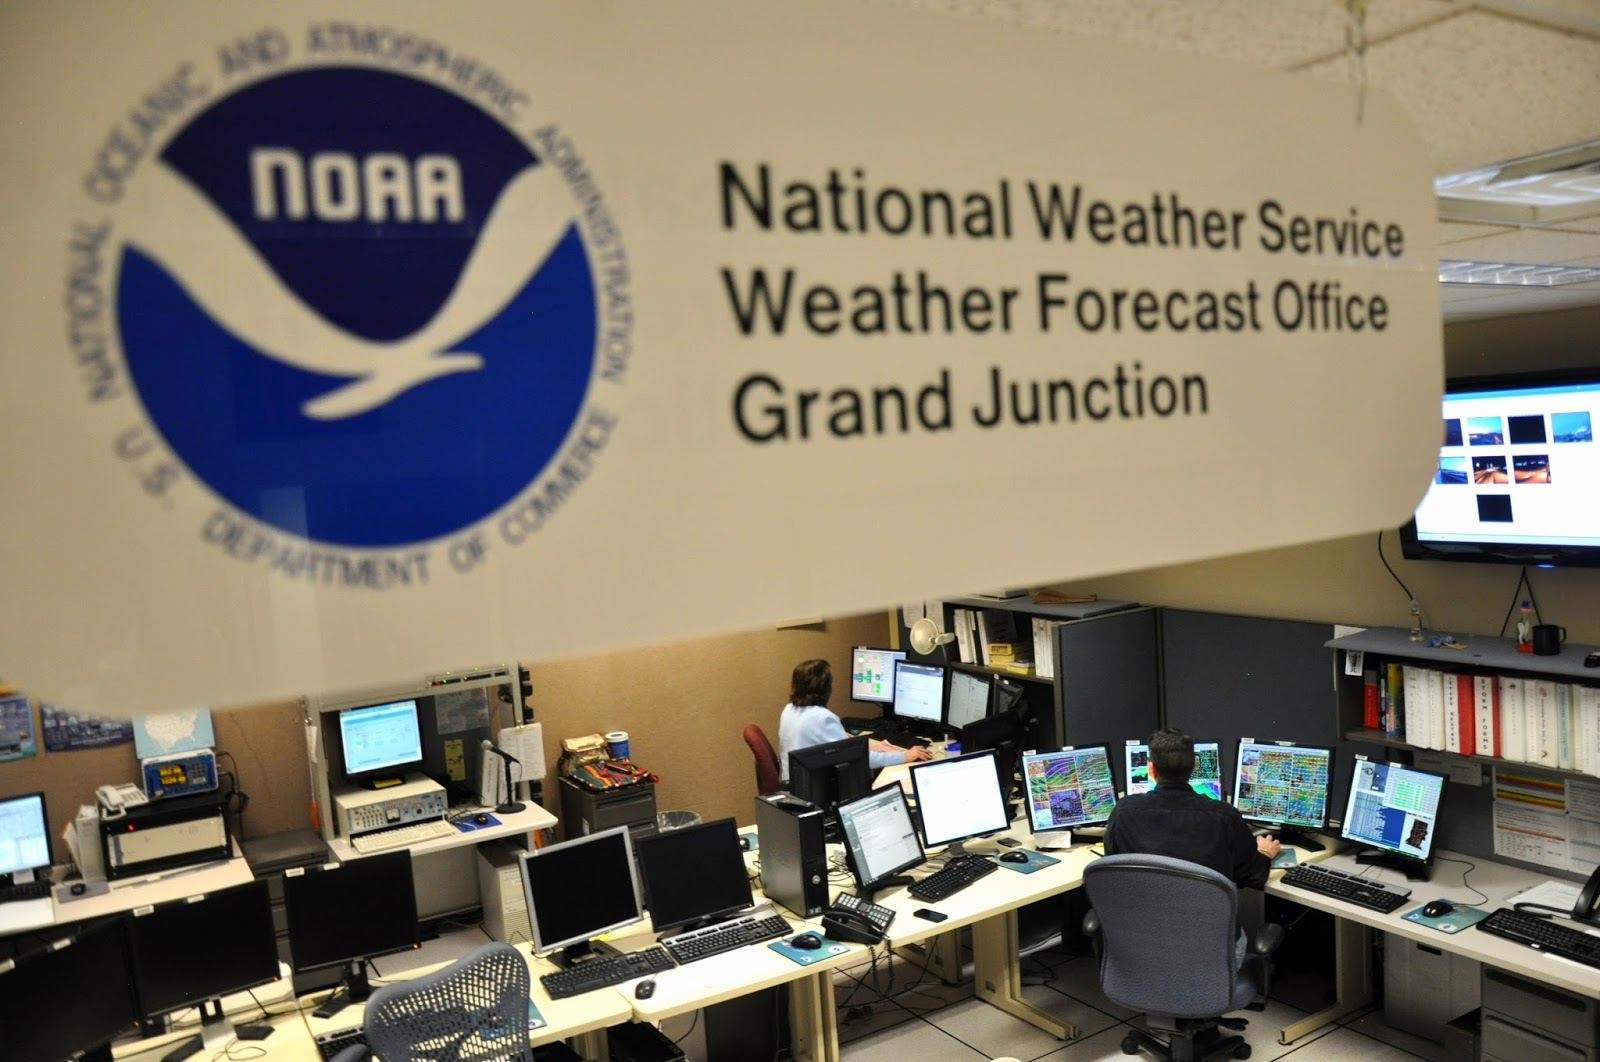 national weather service weather forecast office National weather service is your source for the most complete weather forecast and weather related information on the web.